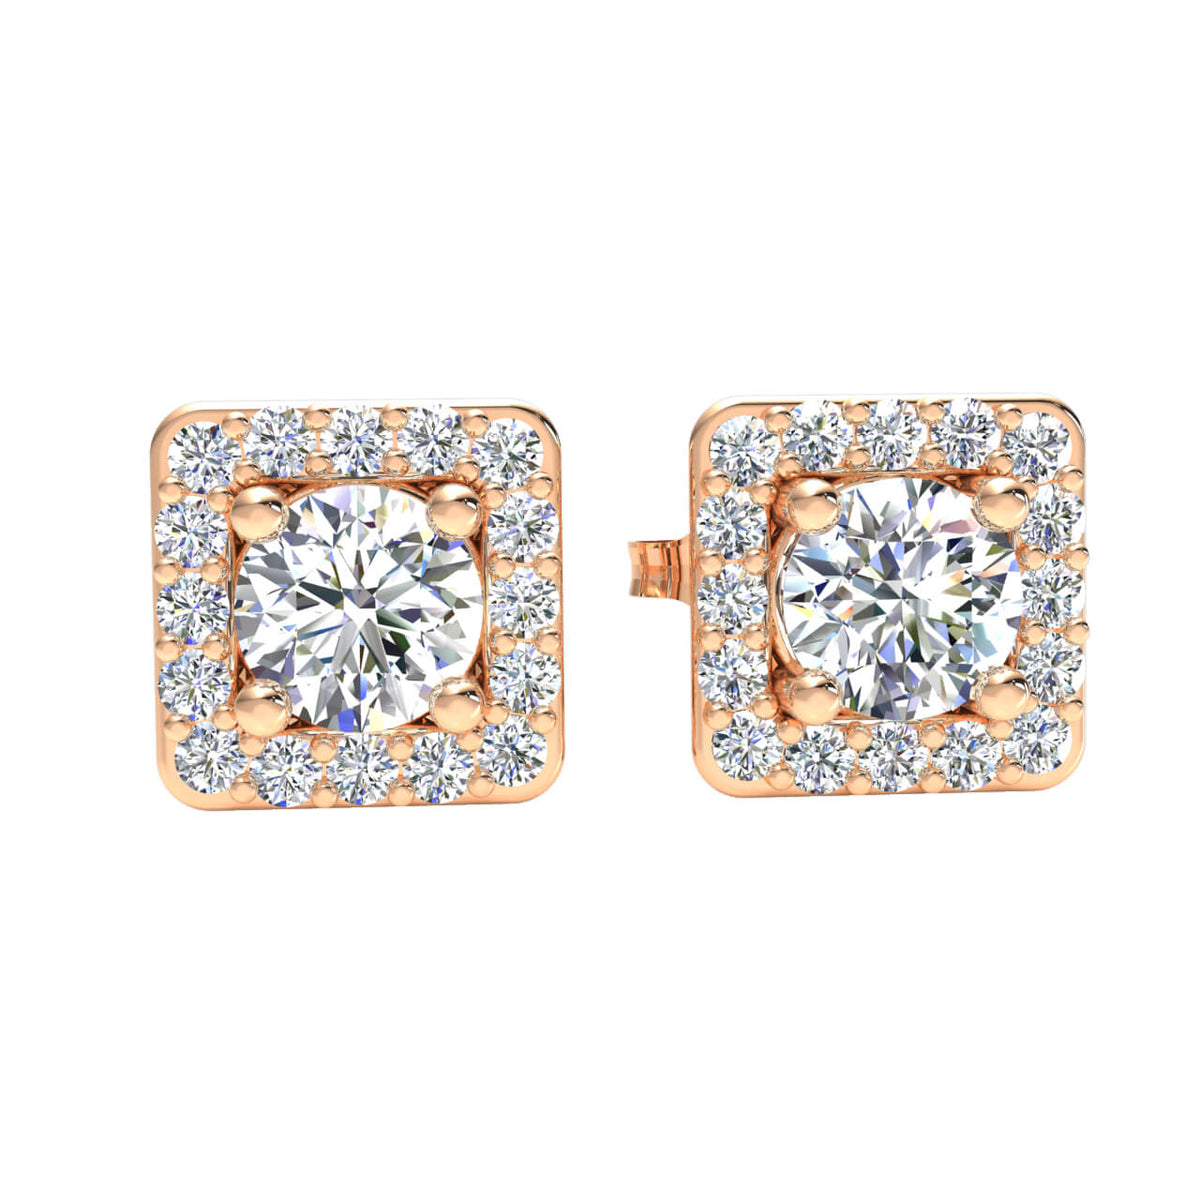 0.66 Ct Square Halo Round GH I1-I2 Diamond Stud Earrings 925 Sterling Silver